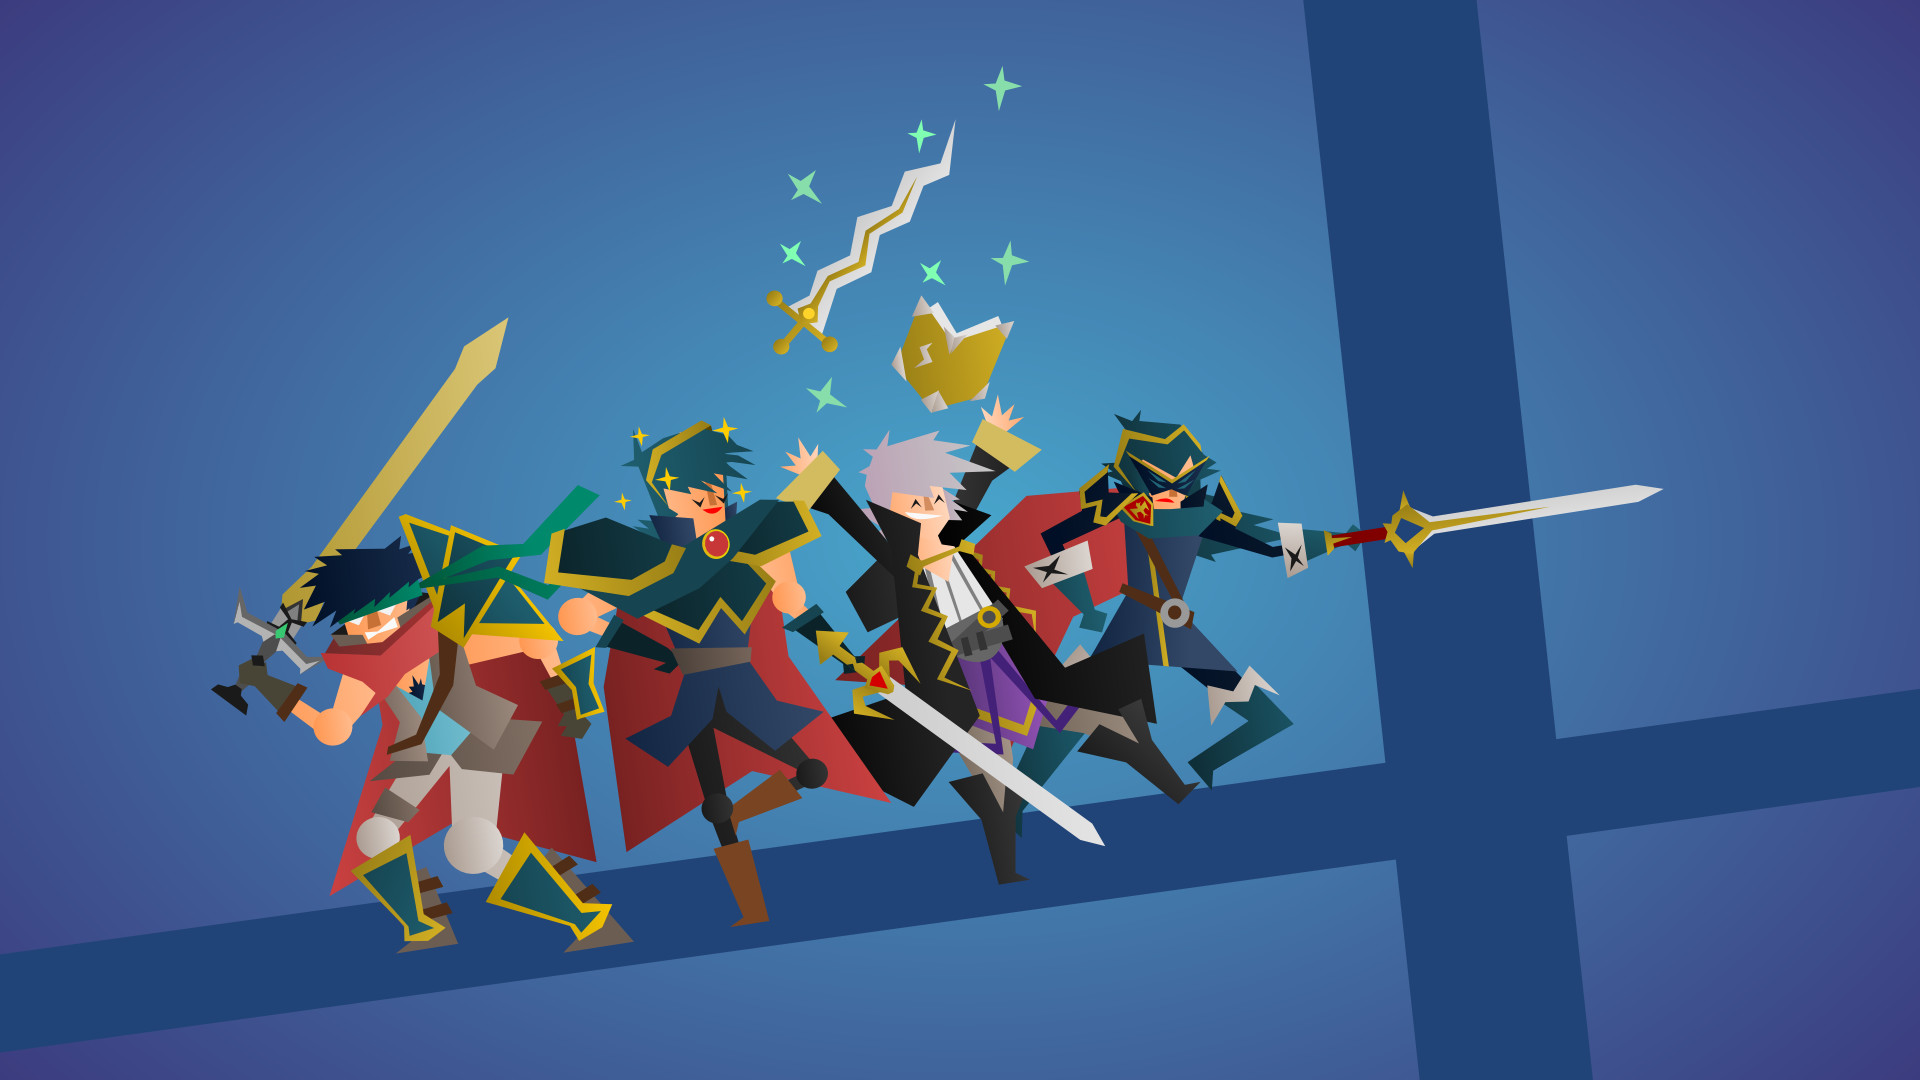 1920x1080 Made another pic: Fire Emblem Smashers! Tell me what you think ;*